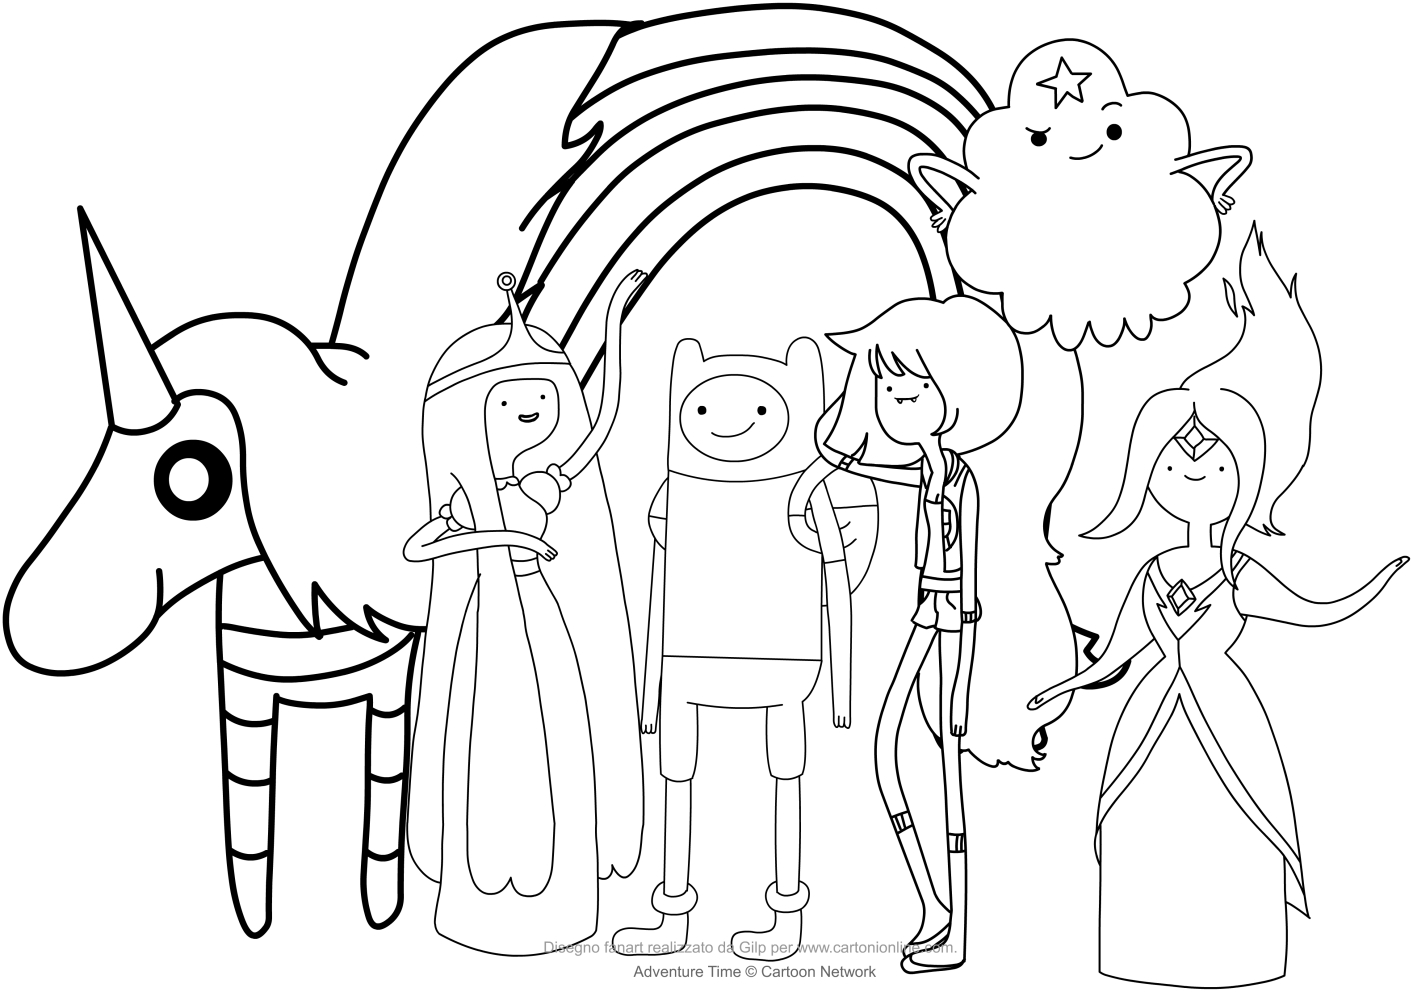 Disegno di finn e le principesse adventure time da colorare for Fortnite disegni da colorare